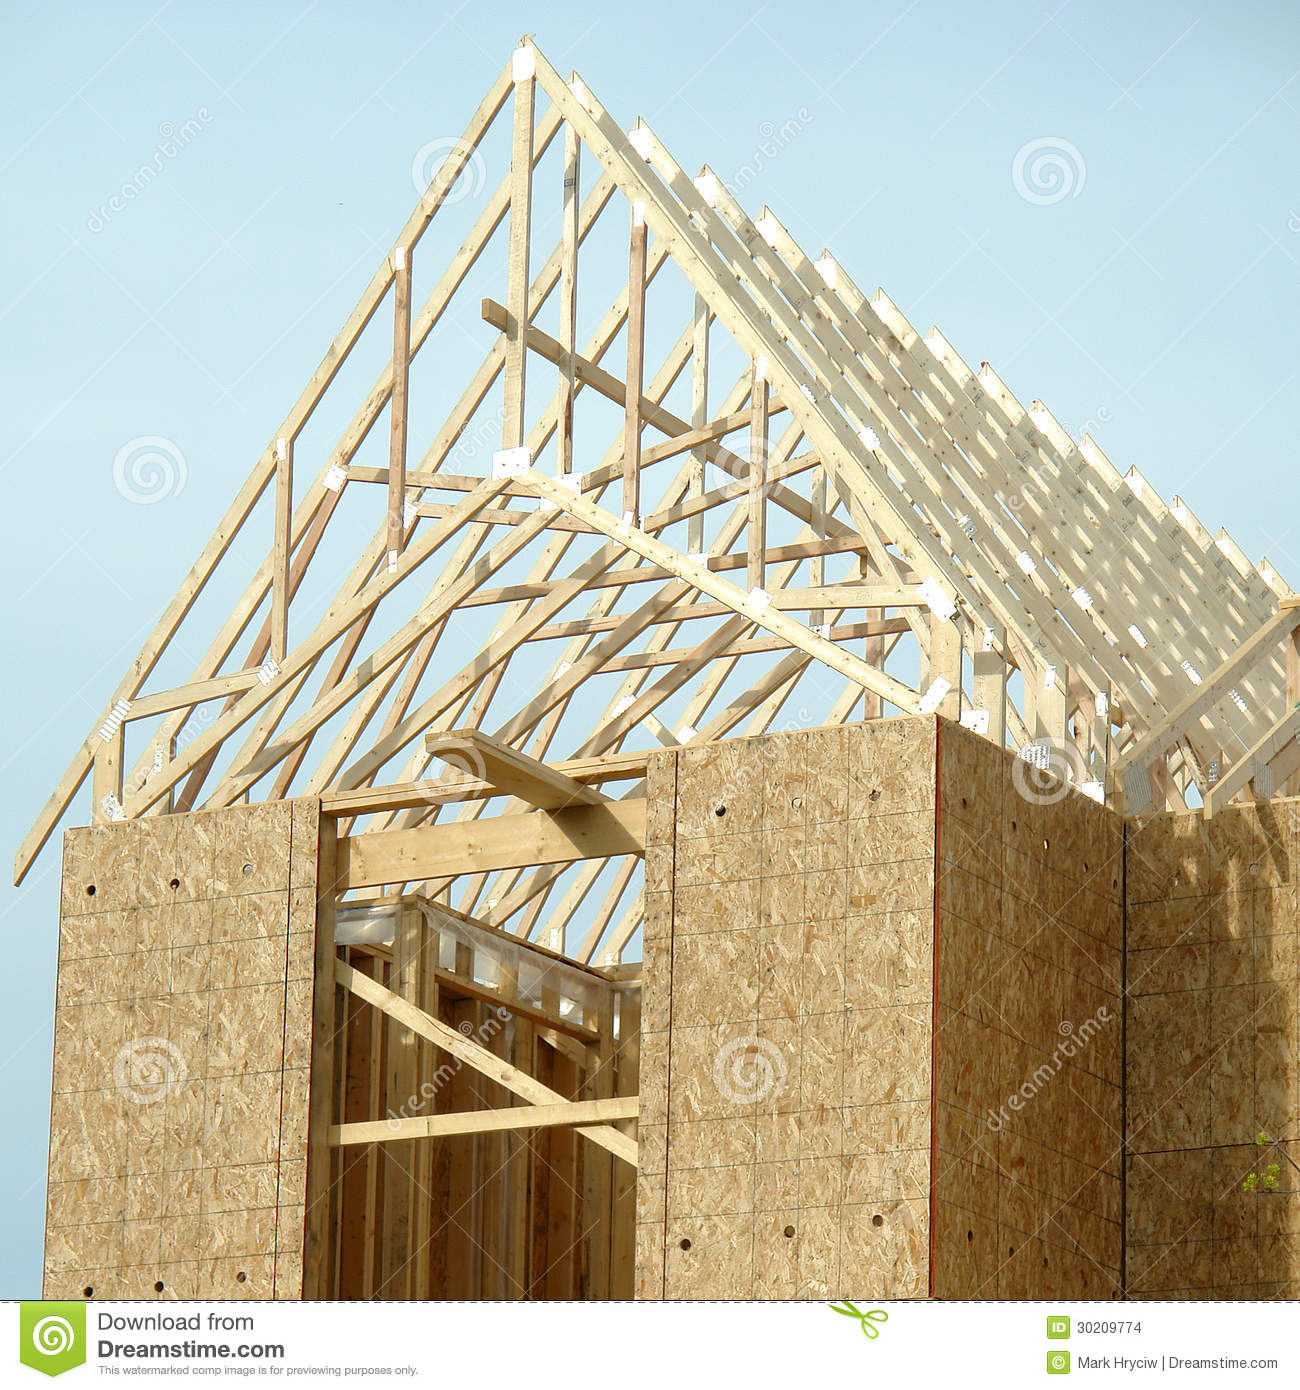 Roof framing residential house construction stock photo for House roof construction